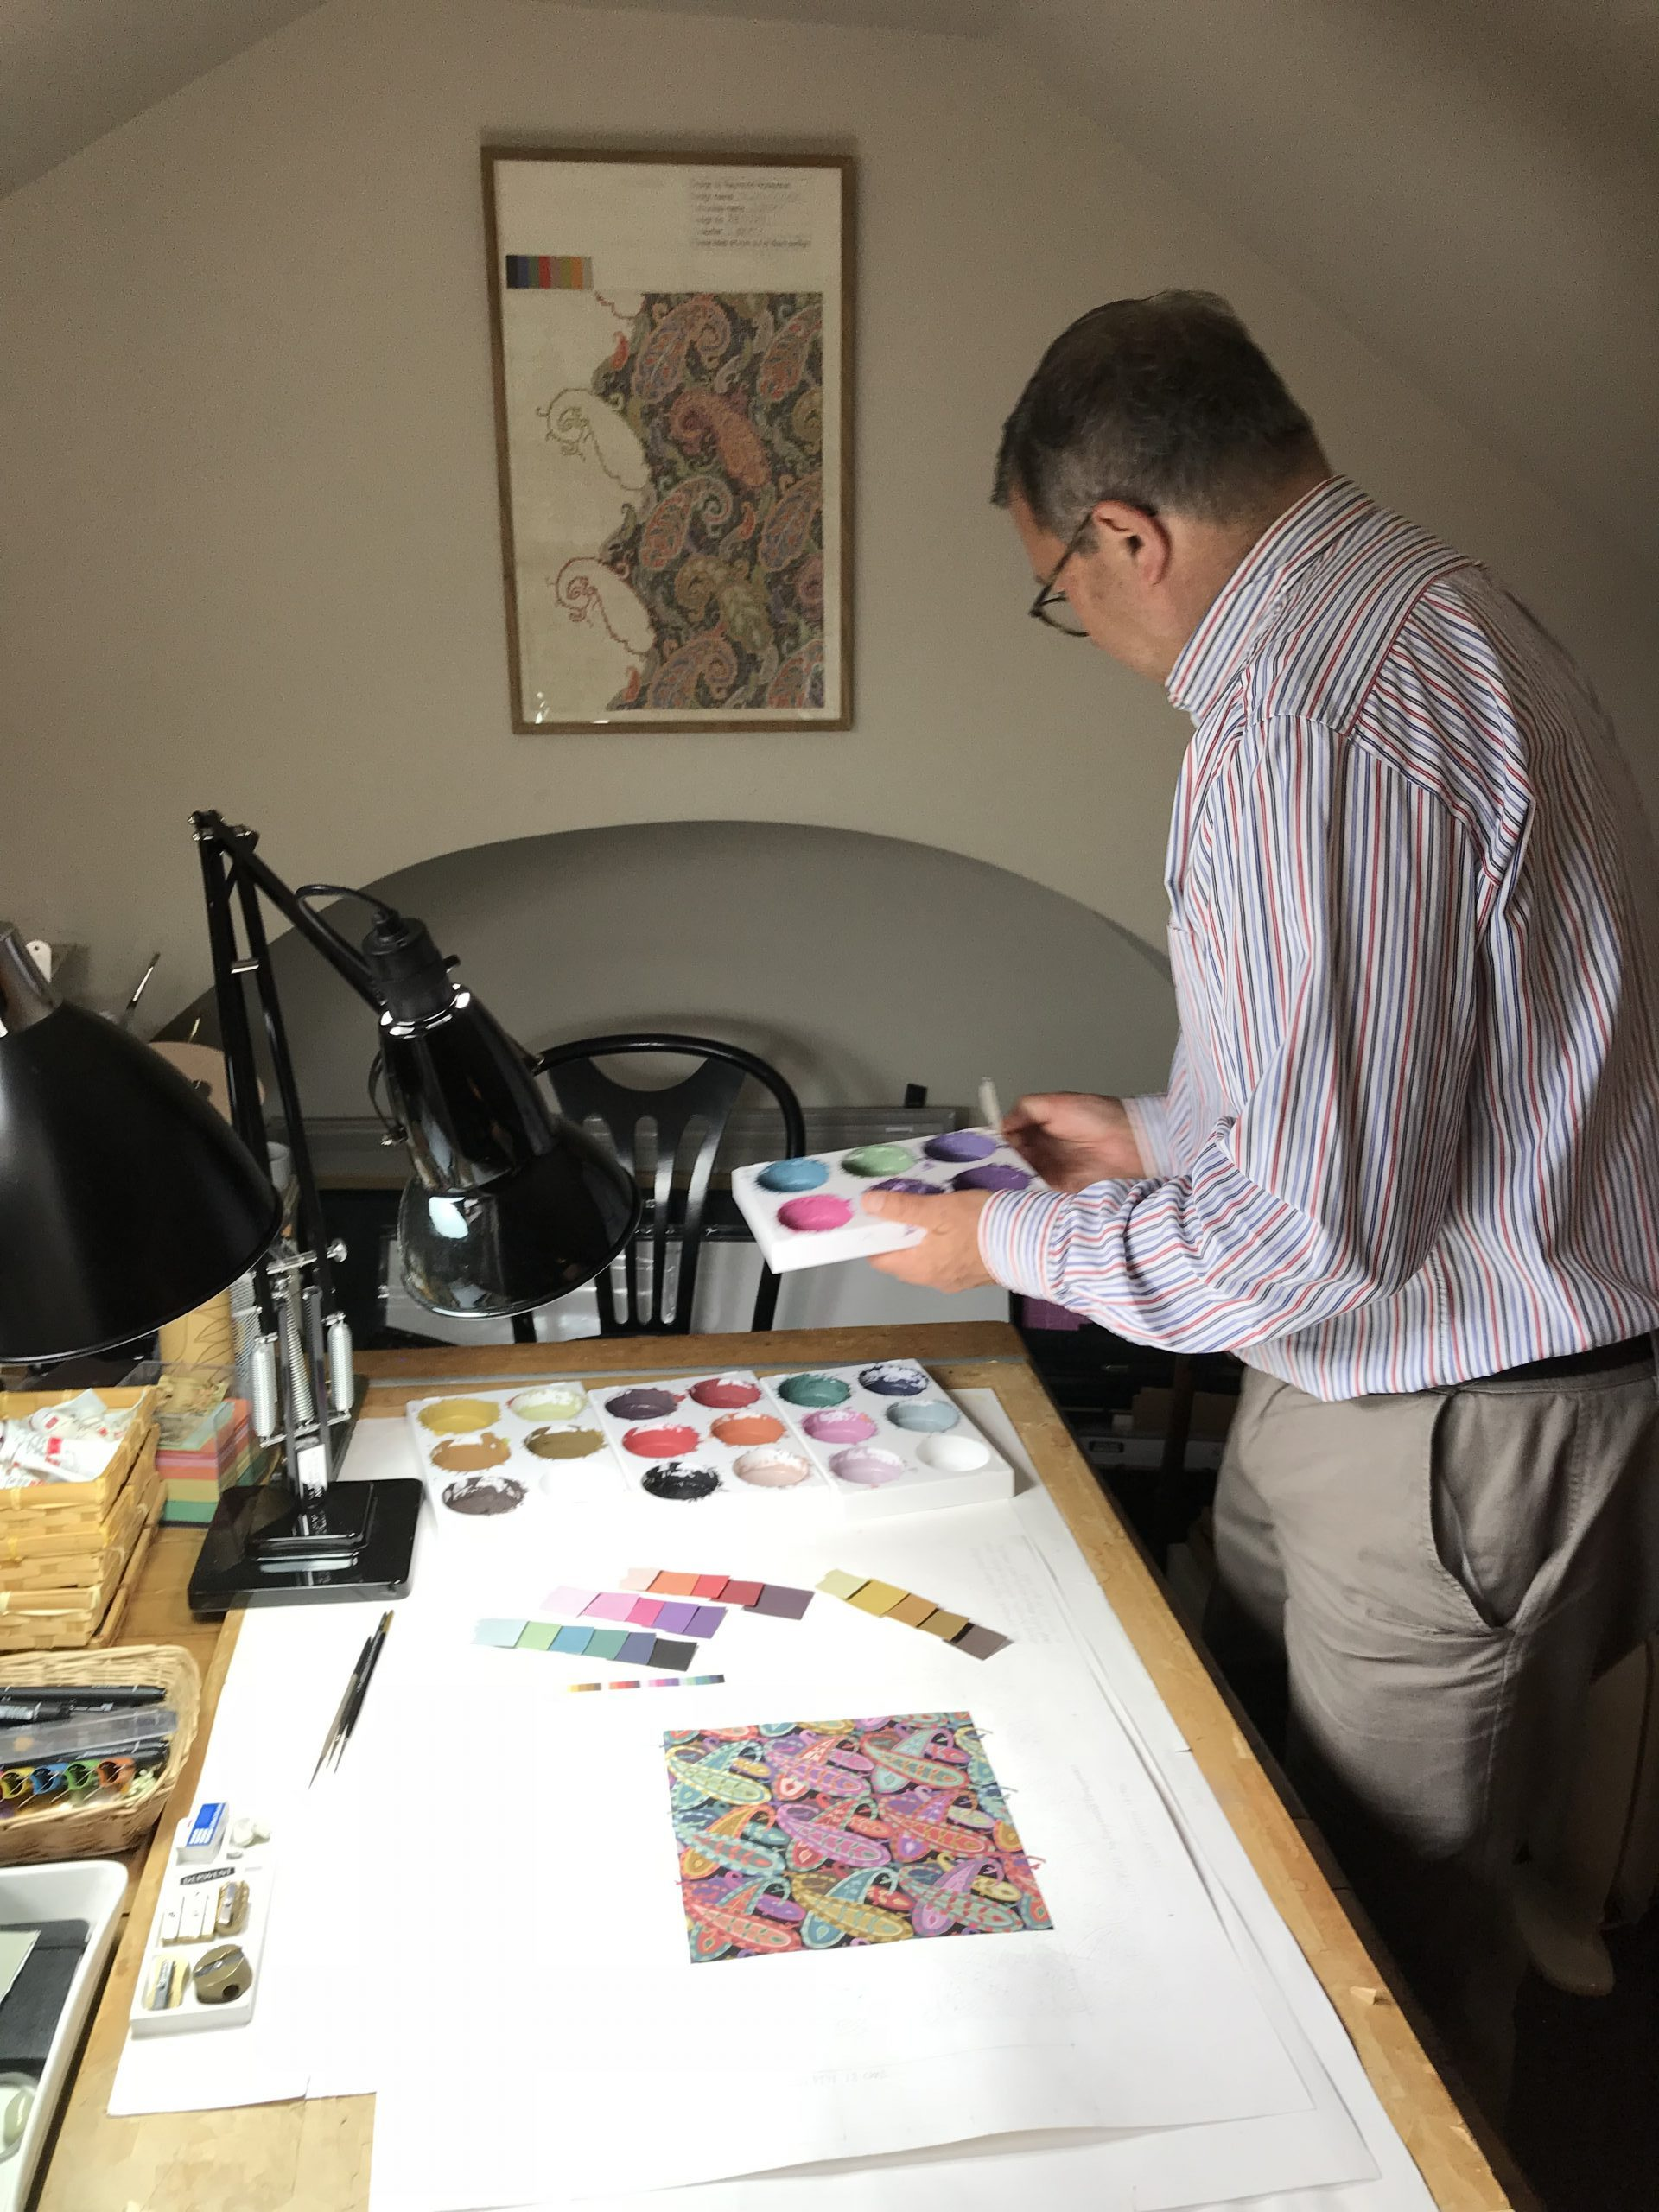 Textile designer, Raymond Honeyman working in his studio on a paisley pattern for The Fibre Co.